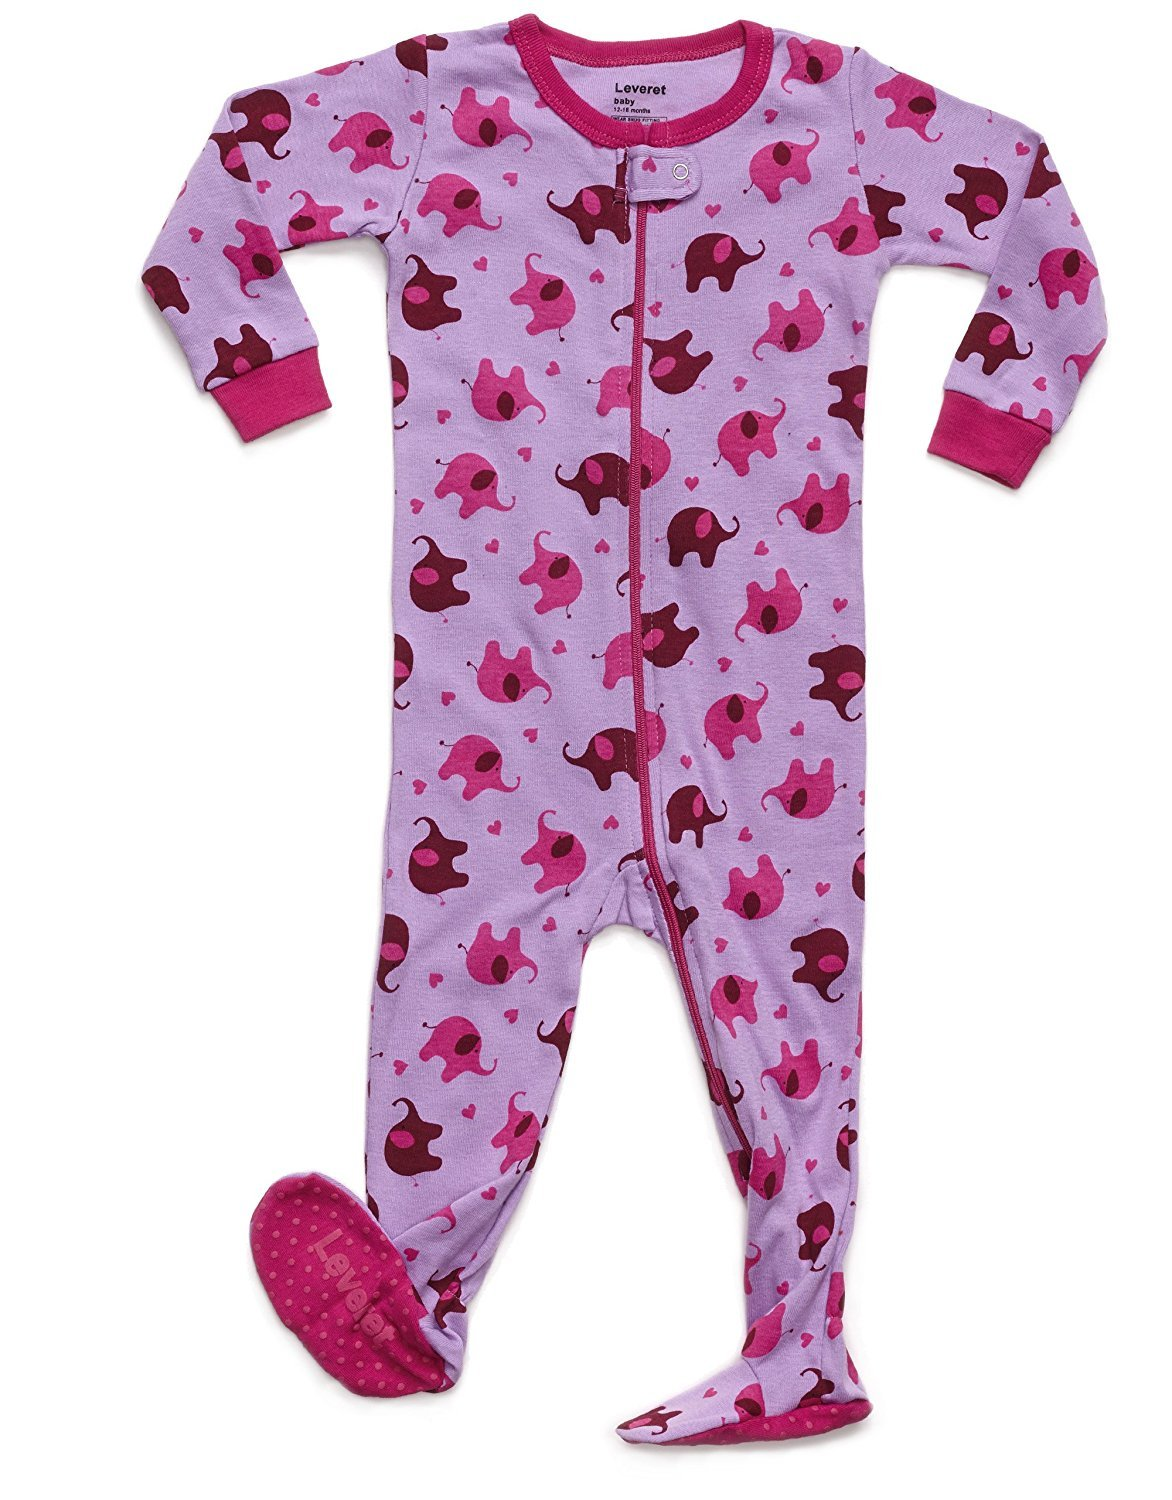 Leveret Horse Footed Pajama Sleeper 100% Cotton 6-12 Months